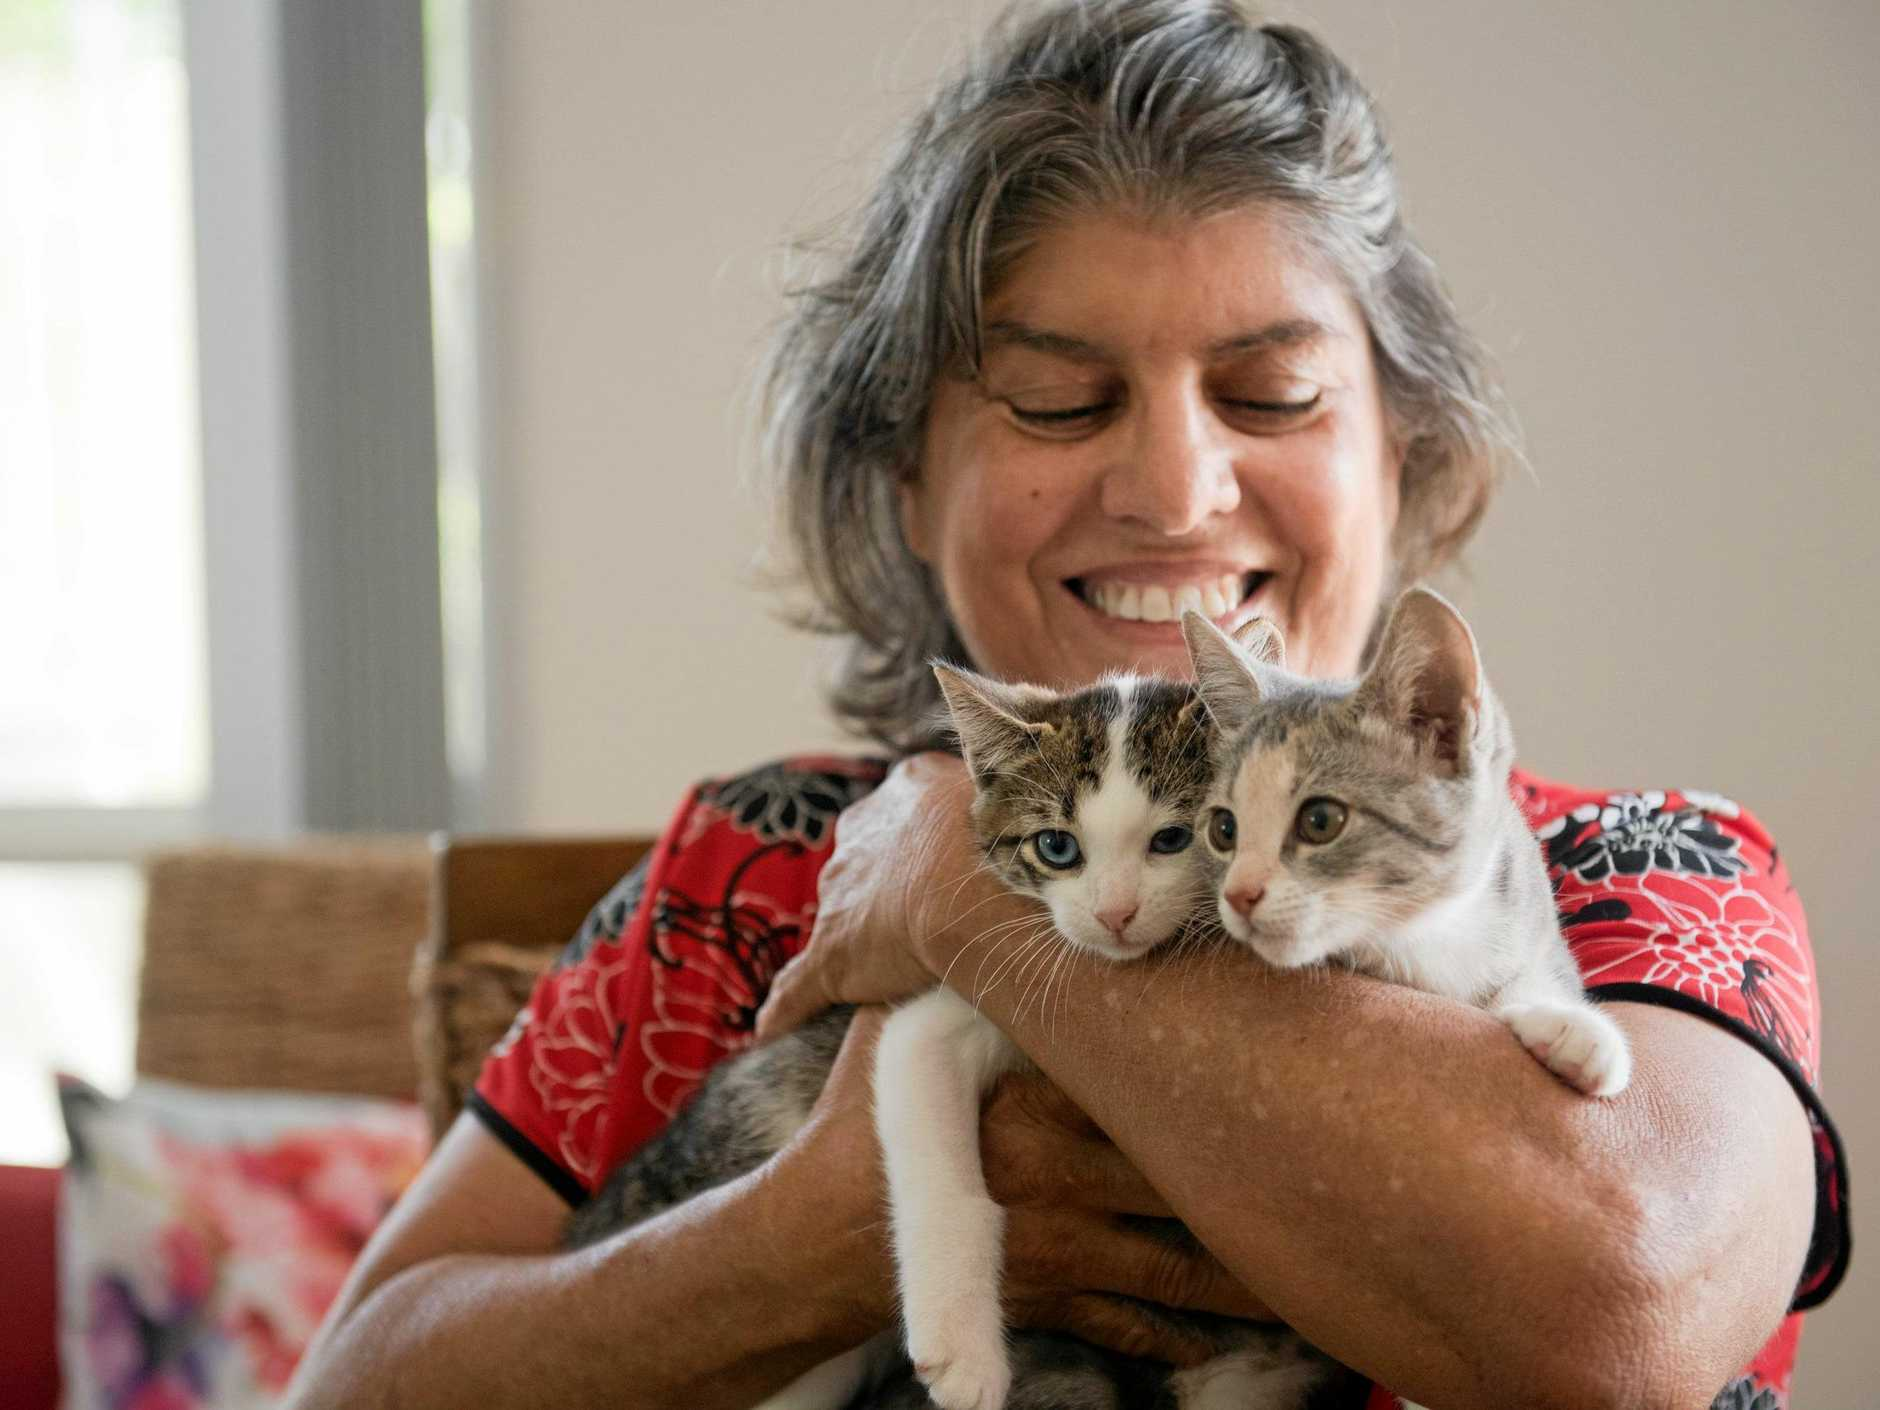 Animal rescue volunteer Robin Morgan with kittens Bamm Bamm and Pebbles, who have bonded since they met each other in foster care.